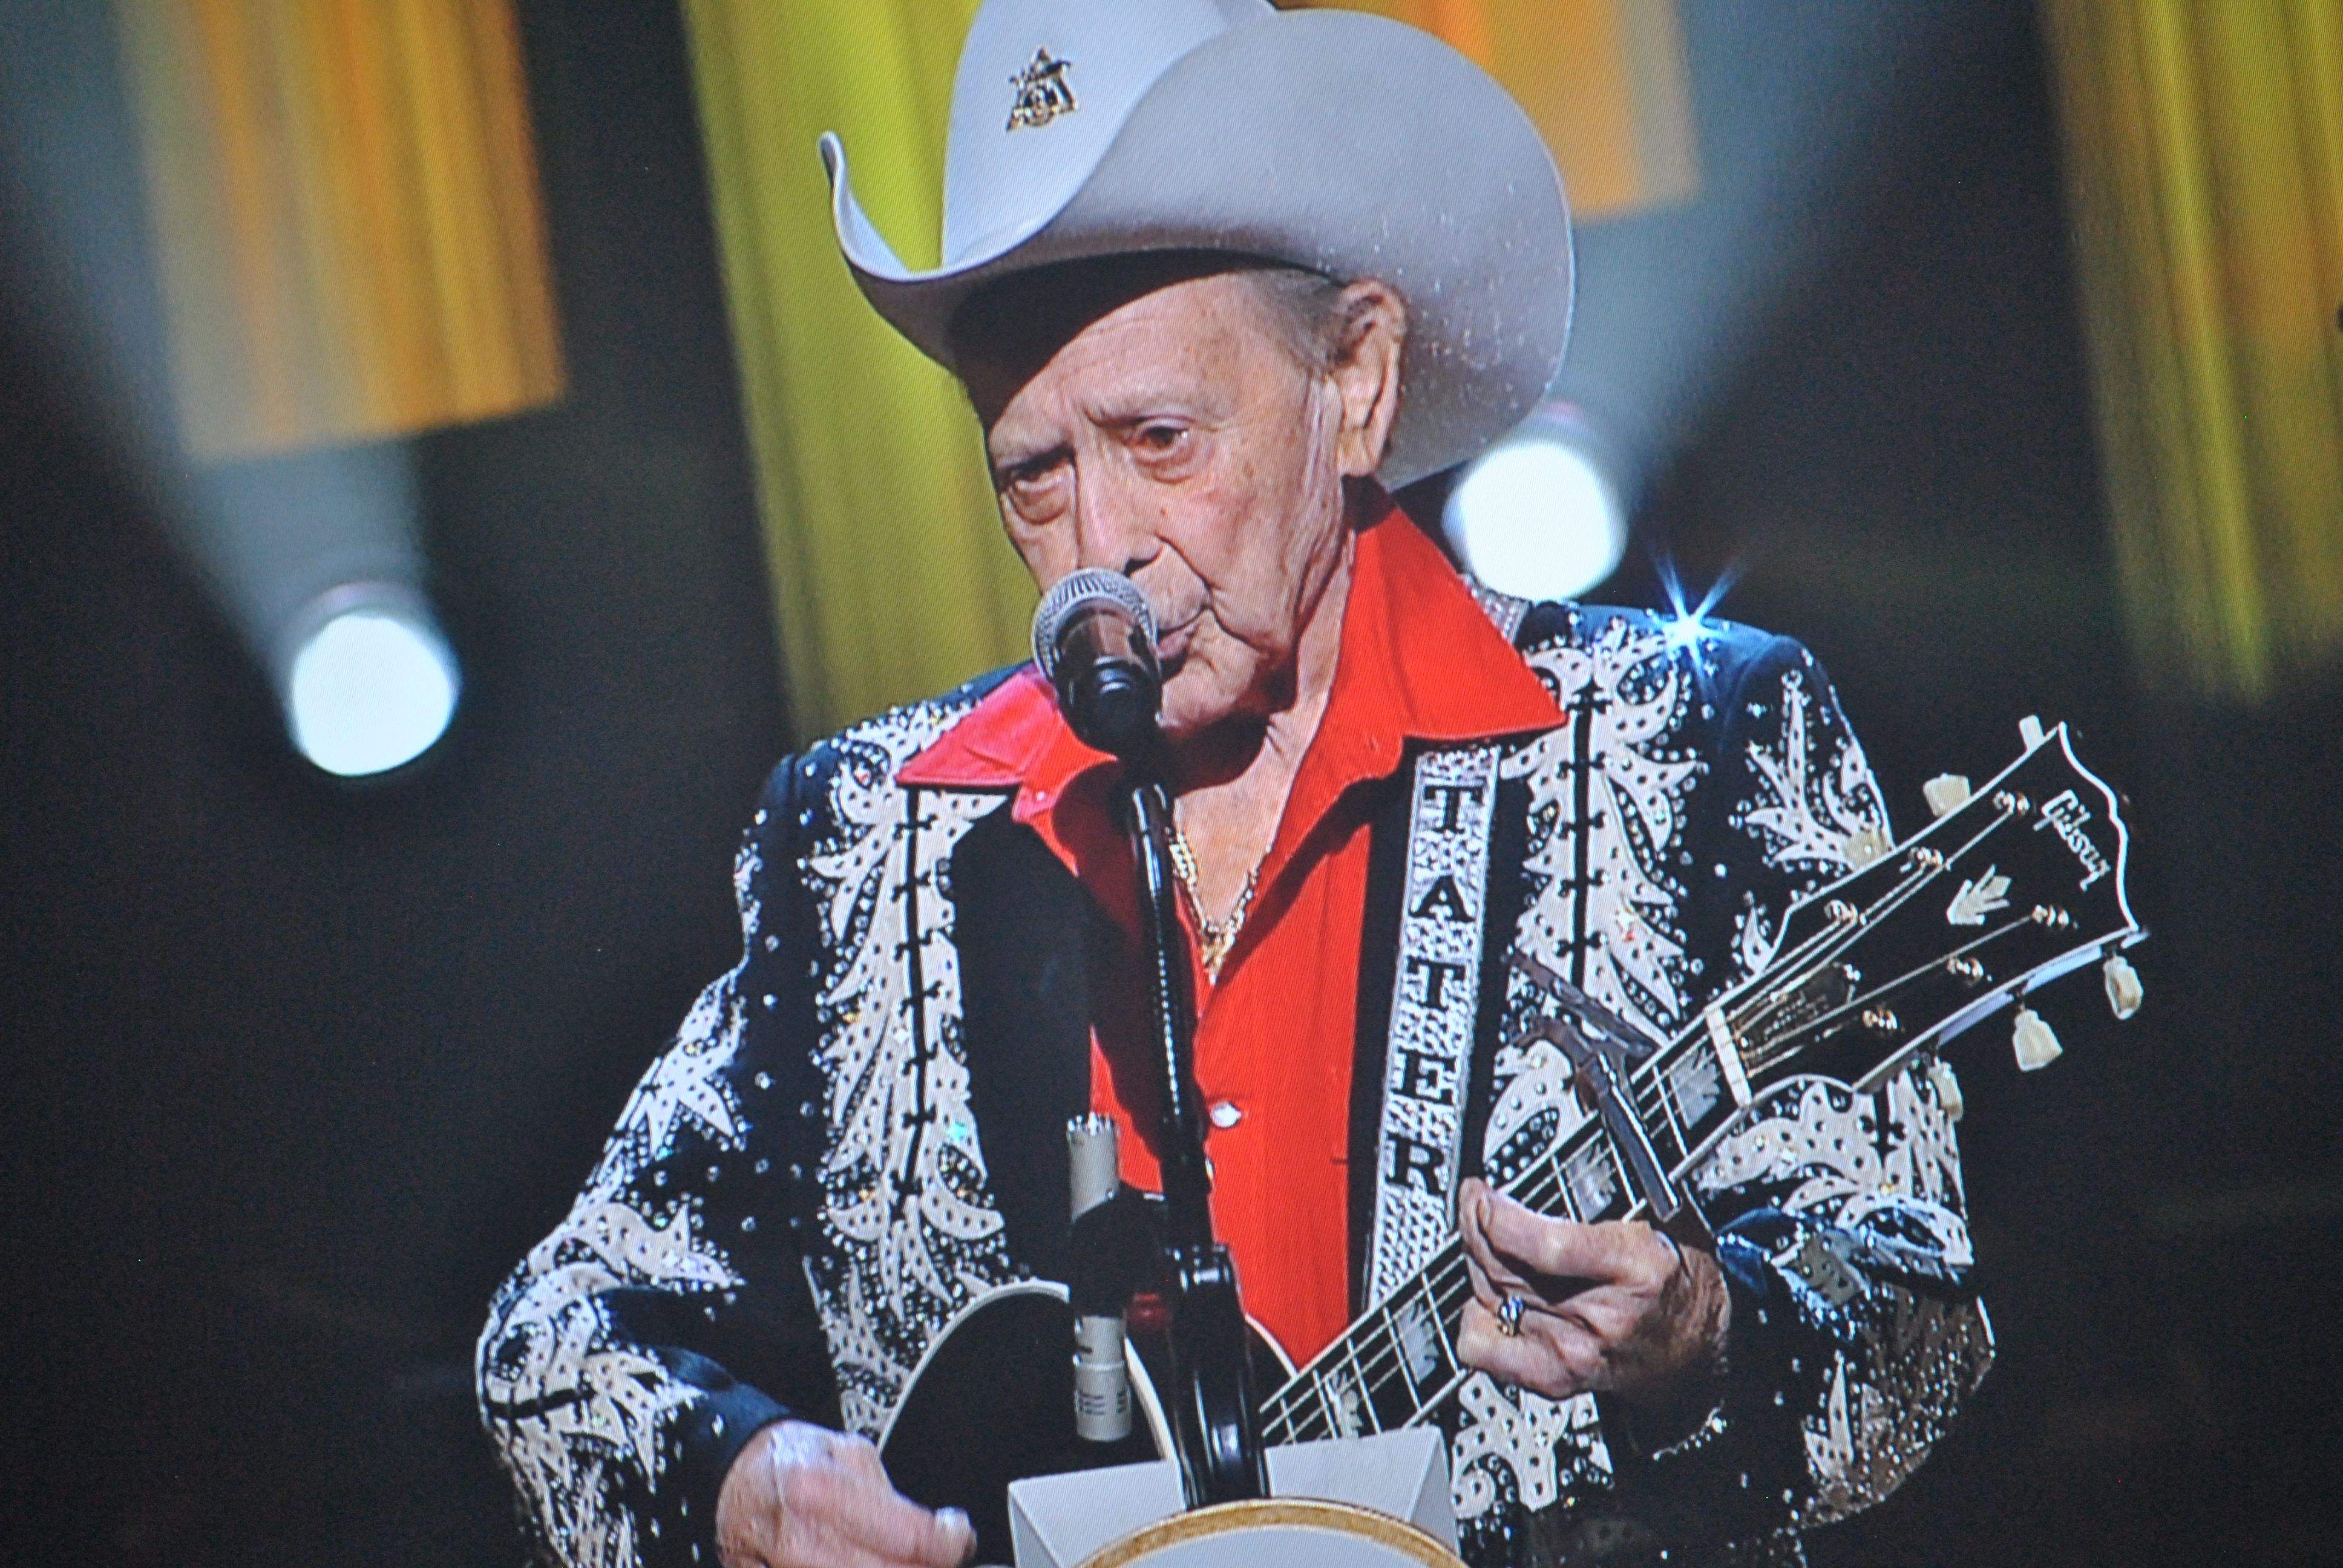 grand ole opry 39 s little jimmy dickens hospitalized. Black Bedroom Furniture Sets. Home Design Ideas